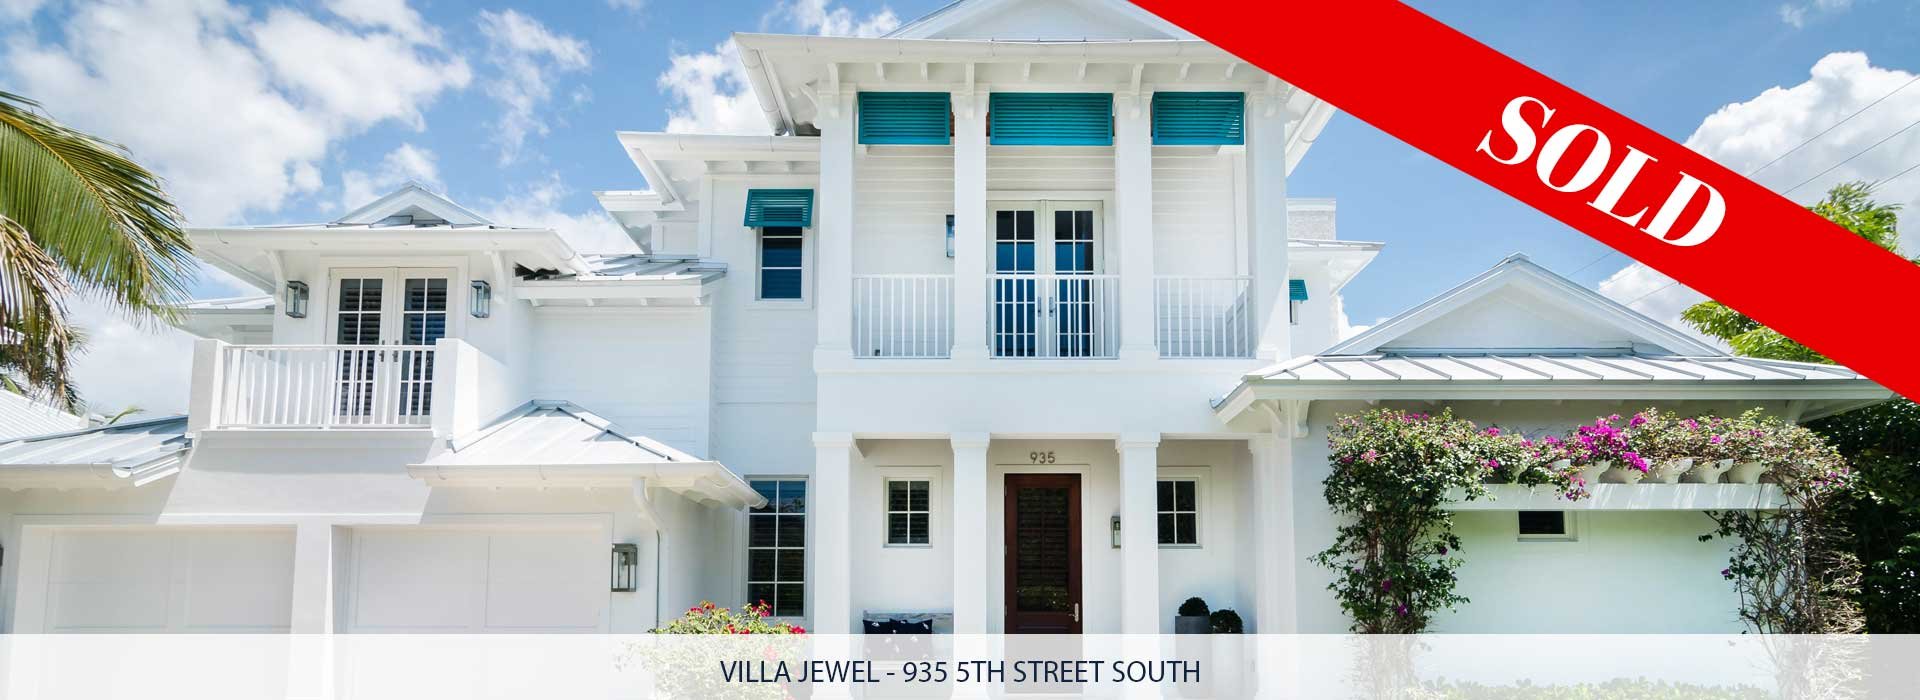 Villa Jewel Naples, Florida Sold | Griffin Builders